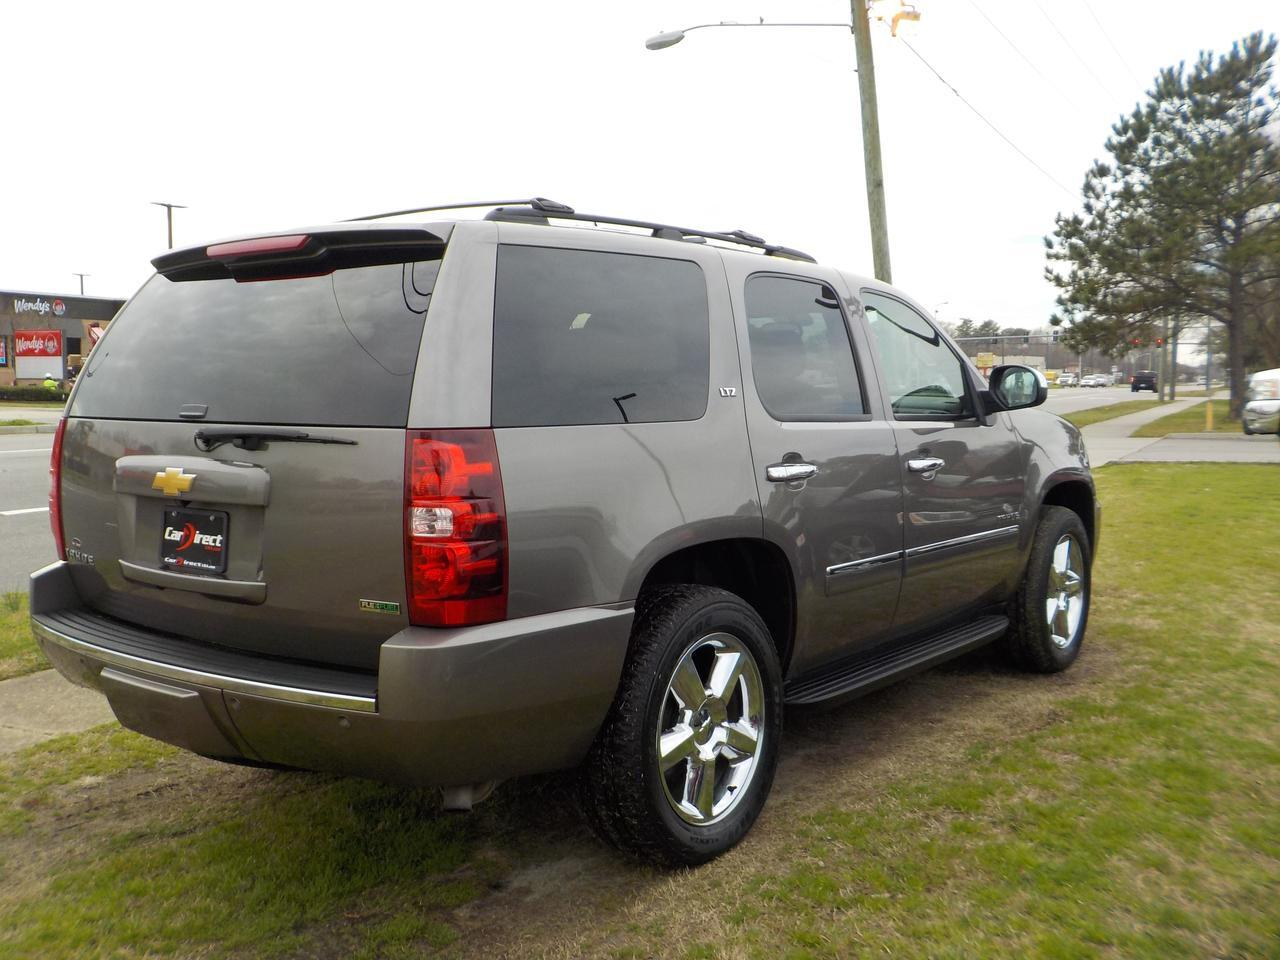 2011 CHEVROLET TAHOE LTZ 4X4, WARRANTY, BOSE SOUND SYSTEM, PARKING SENSORS, DVD, TOW, SUNROOF, NAVIGATION, 3RD ROW! Virginia Beach VA